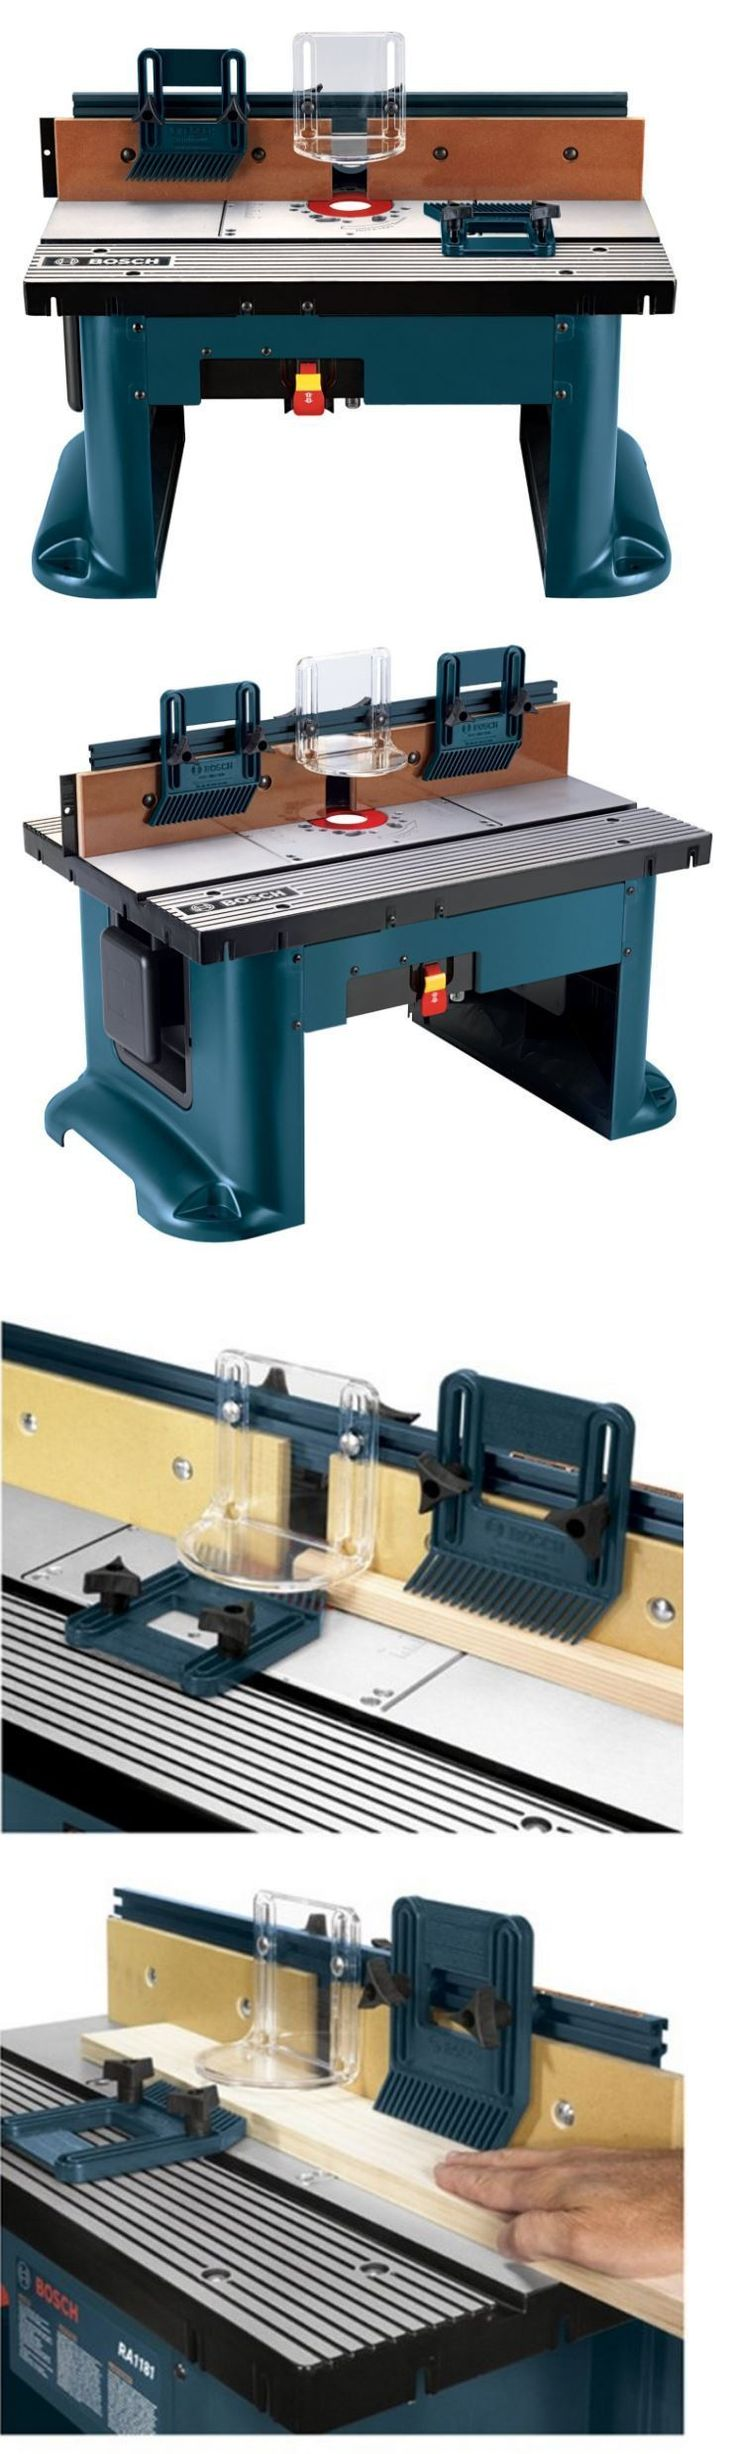 Tools 40 102 promax cast iron router table extension free shipping - Router Tables 75680 Router Table Benchtop Wood Working Carpentry Mounting Plate Power Tools